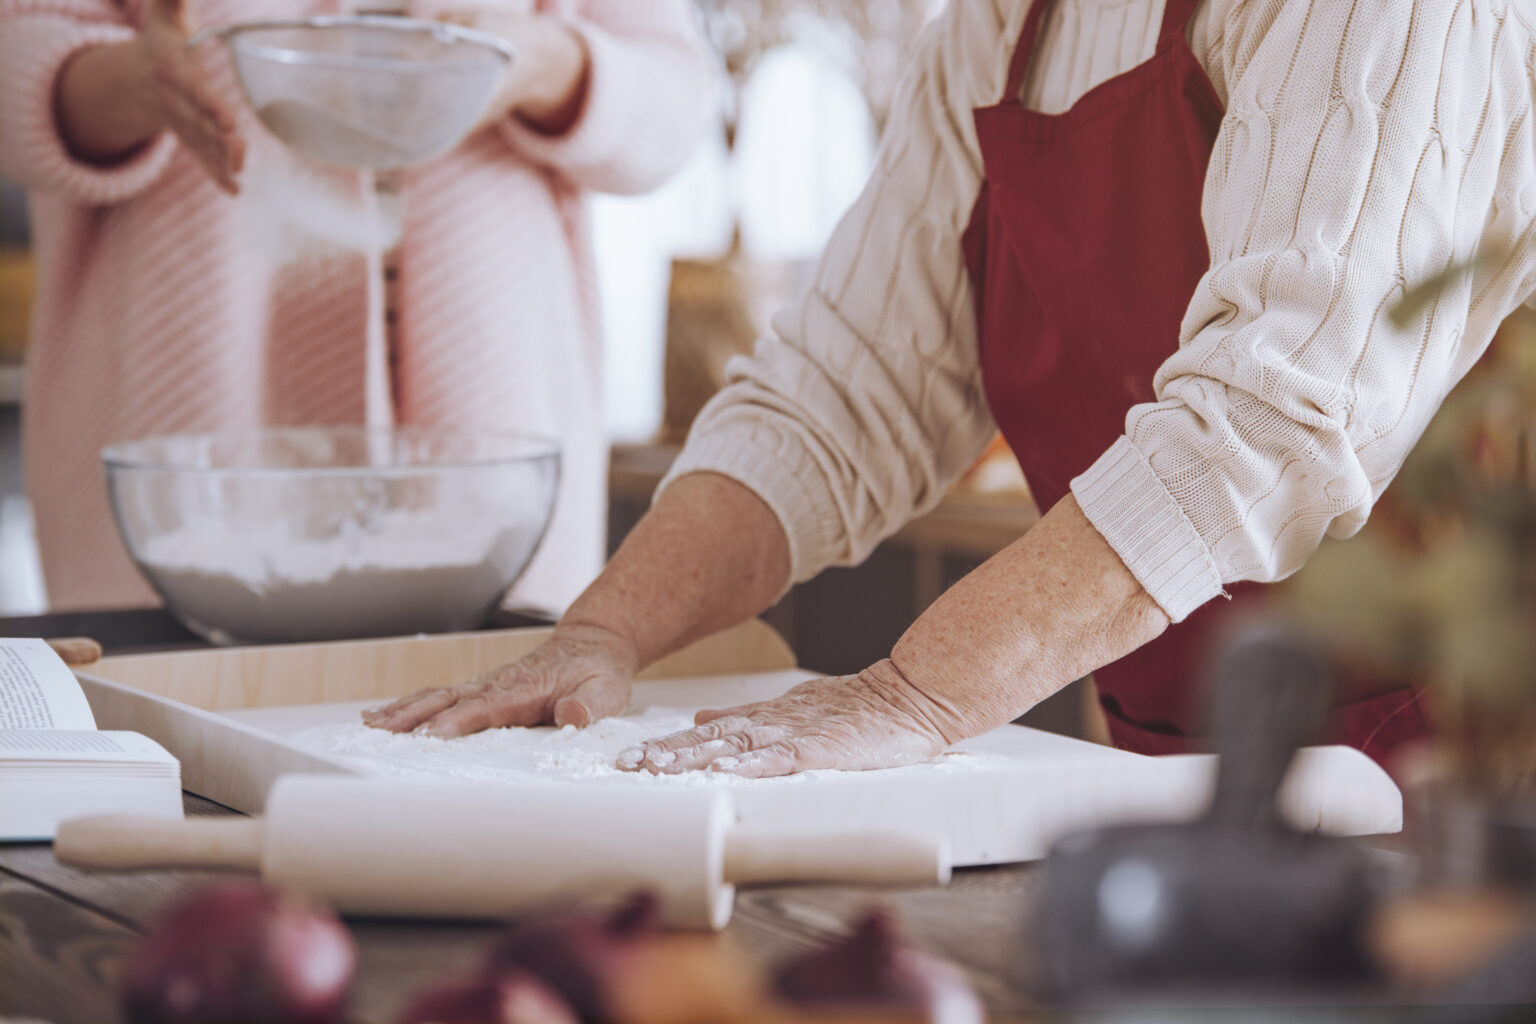 Close-up of person making cake on wooden board on countertop with rolling pin